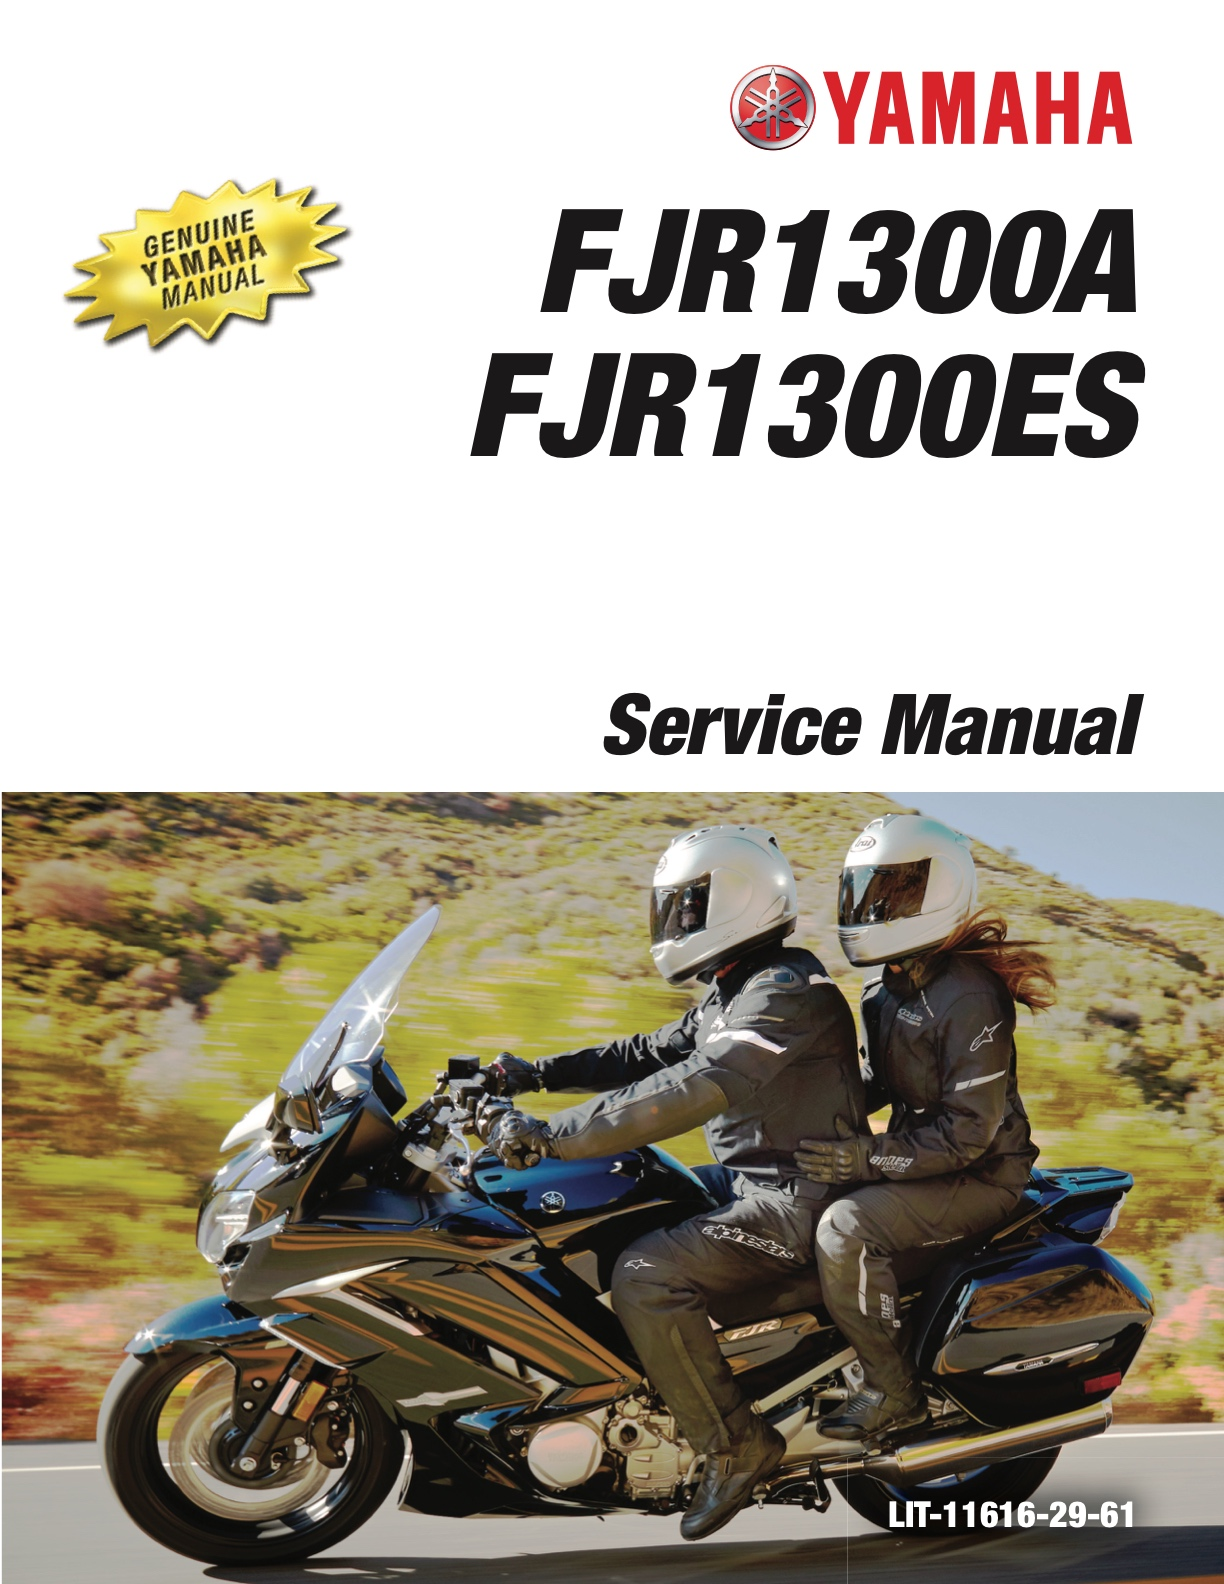 Yamaha Fjr1300a Fjr1300es 2016 2019 Workshop Repair Service Manual